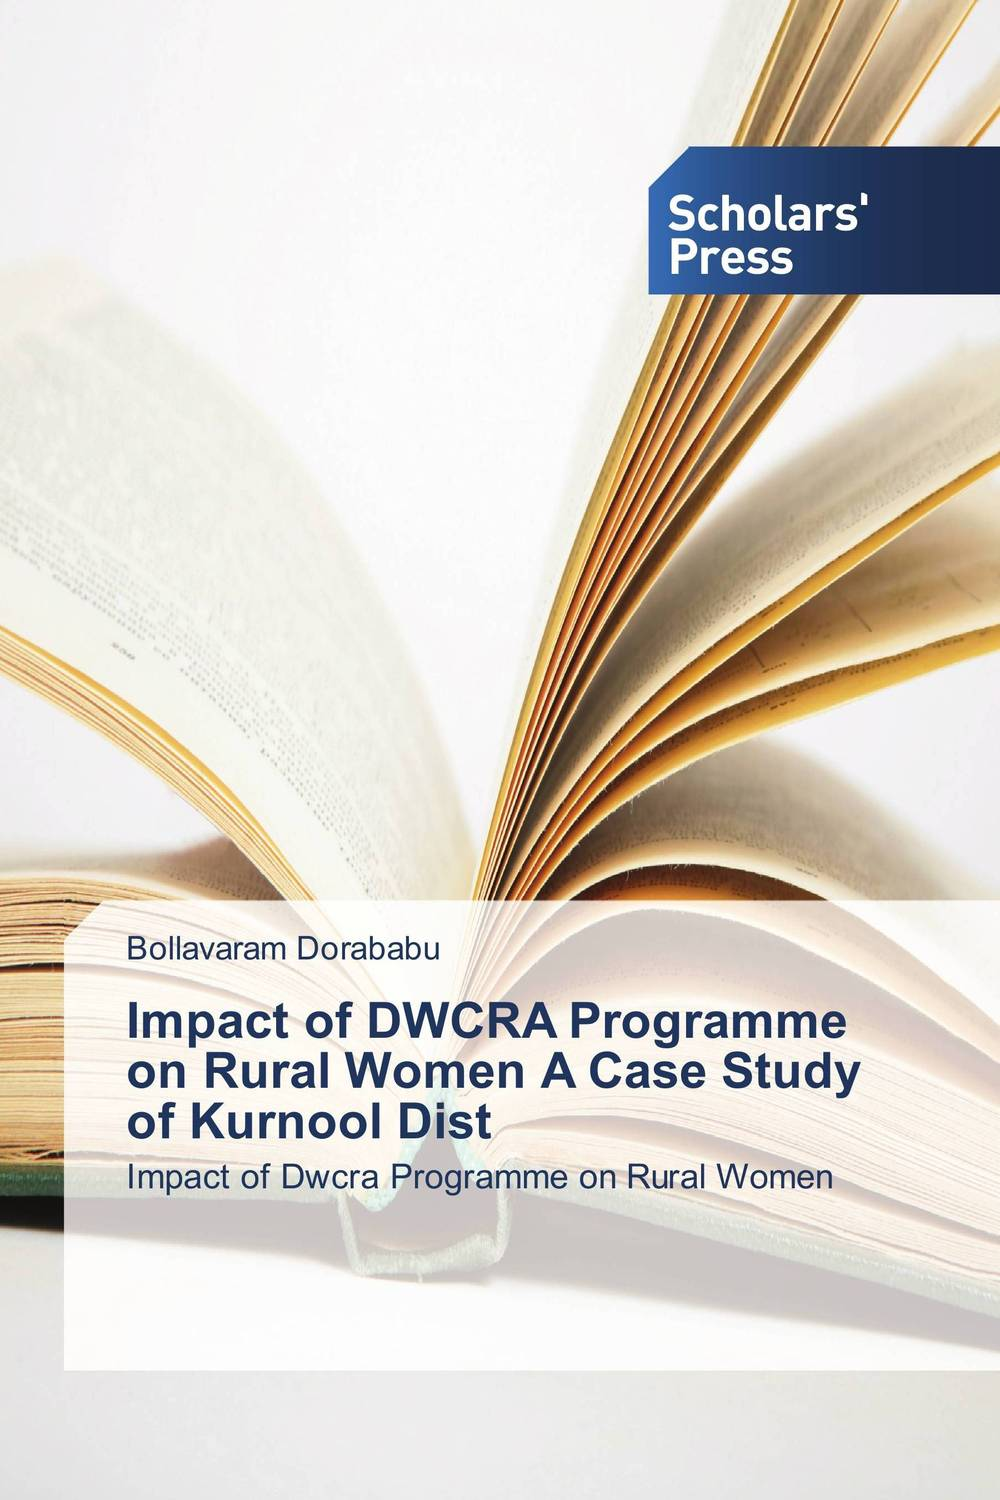 Impact of DWCRA Programme on Rural Women A Case Study of Kurnool Dist rajsinh mohite impact of national leprosy eradication programme